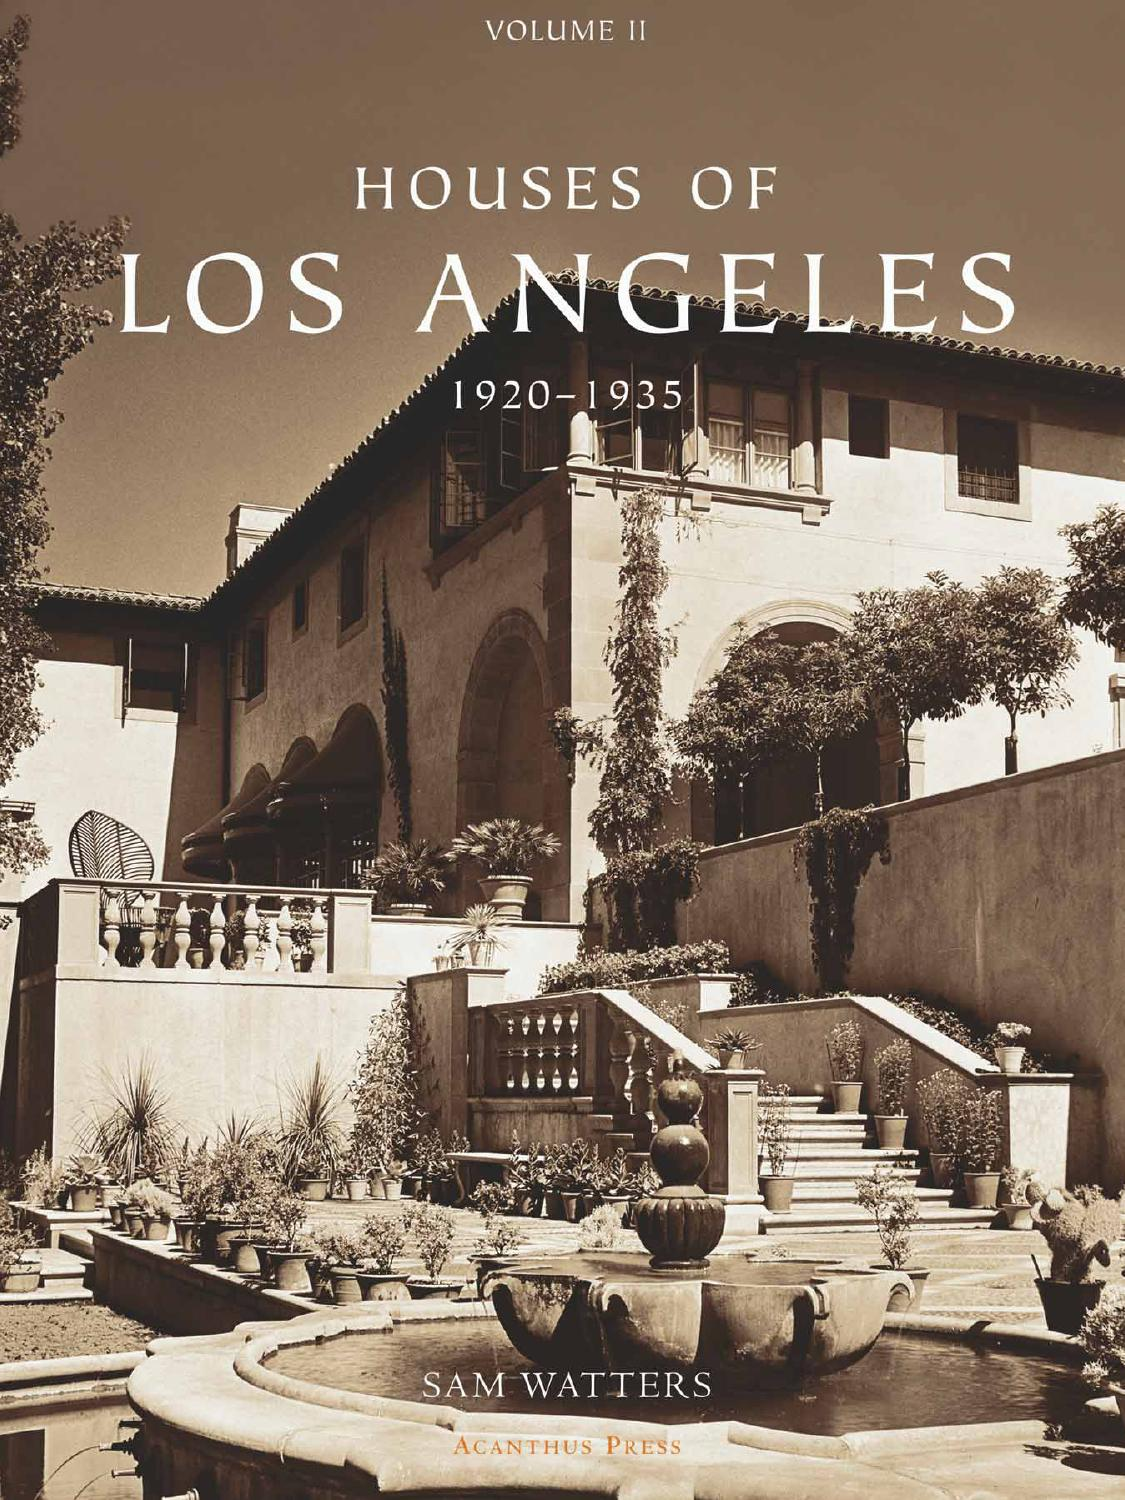 Issuu Houses Of Los Angeles 1920 1935 By Acanthus Press Llc